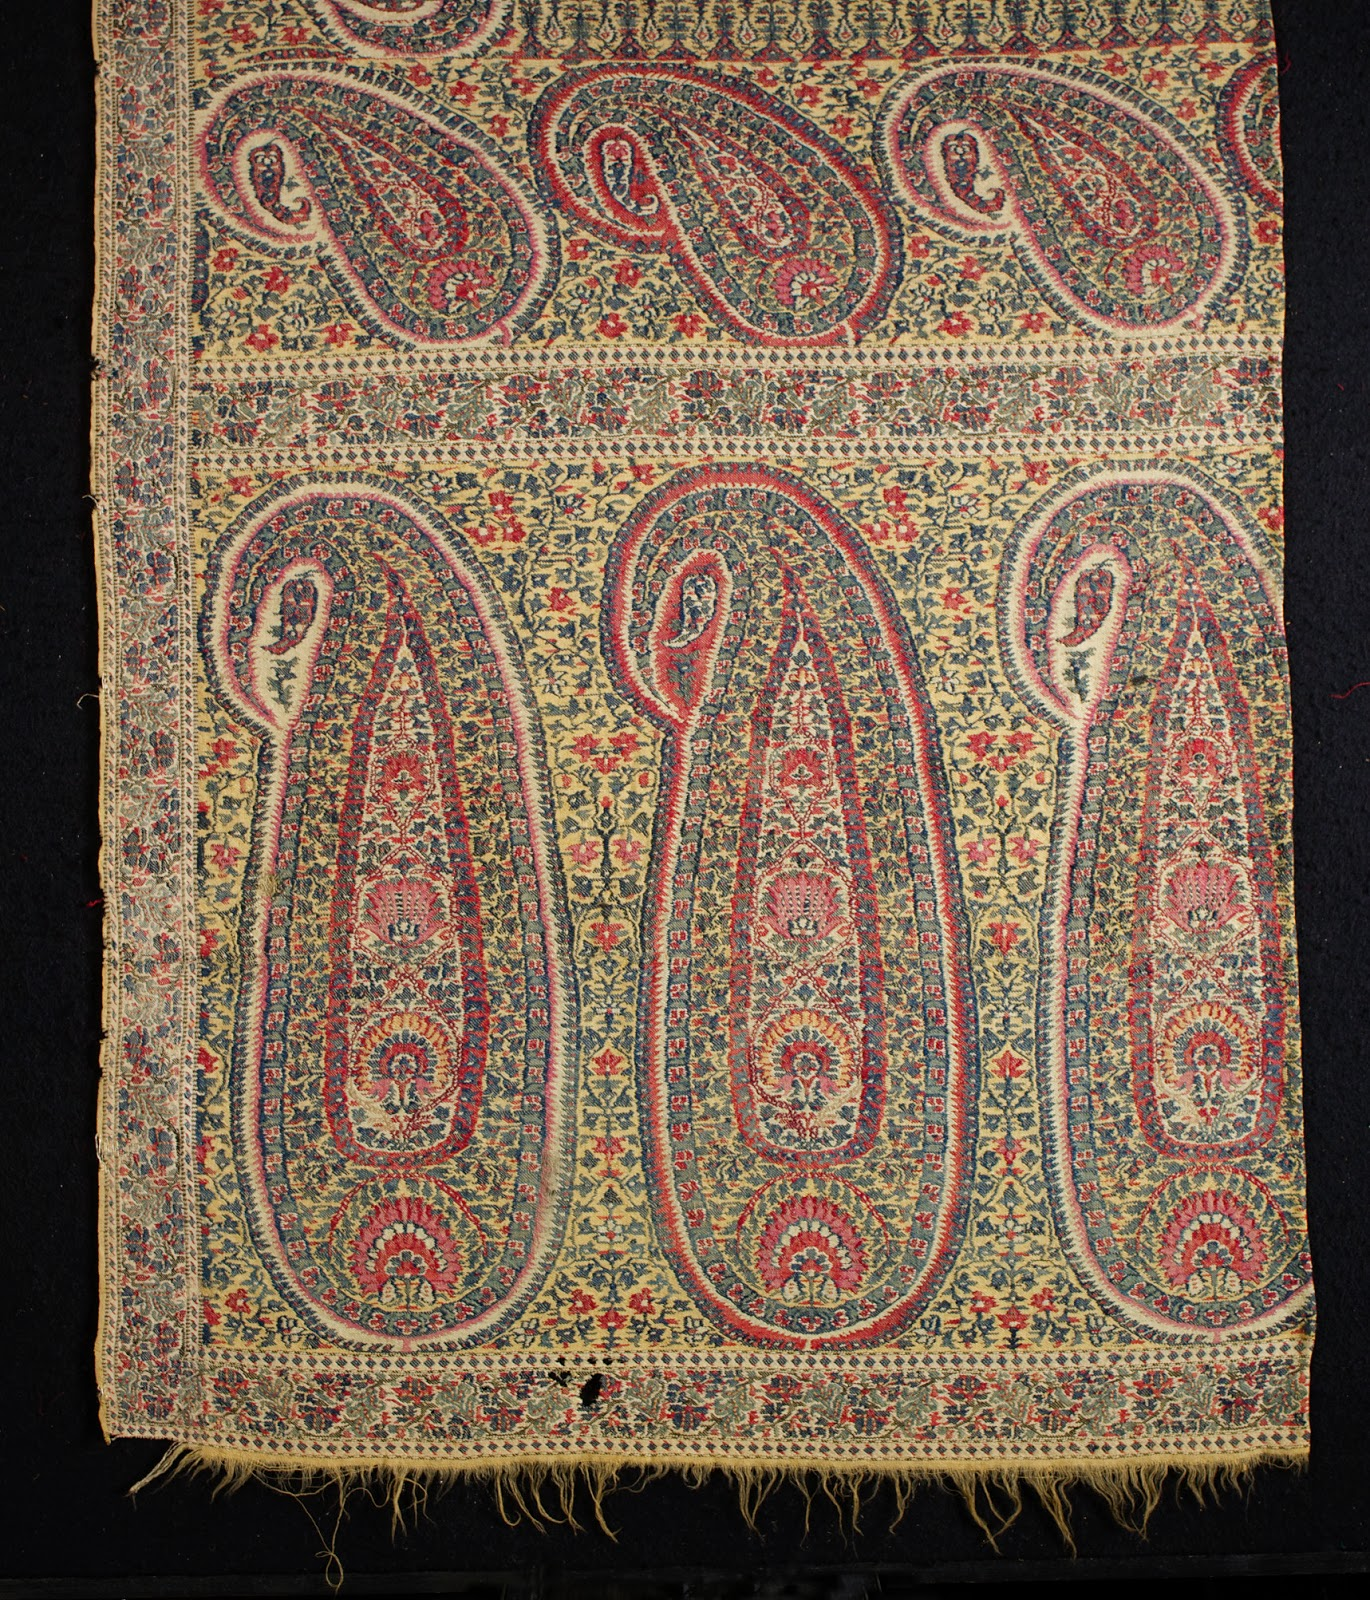 FolkCostume&Embroidery: The Shawl, An Asian Invasion Into